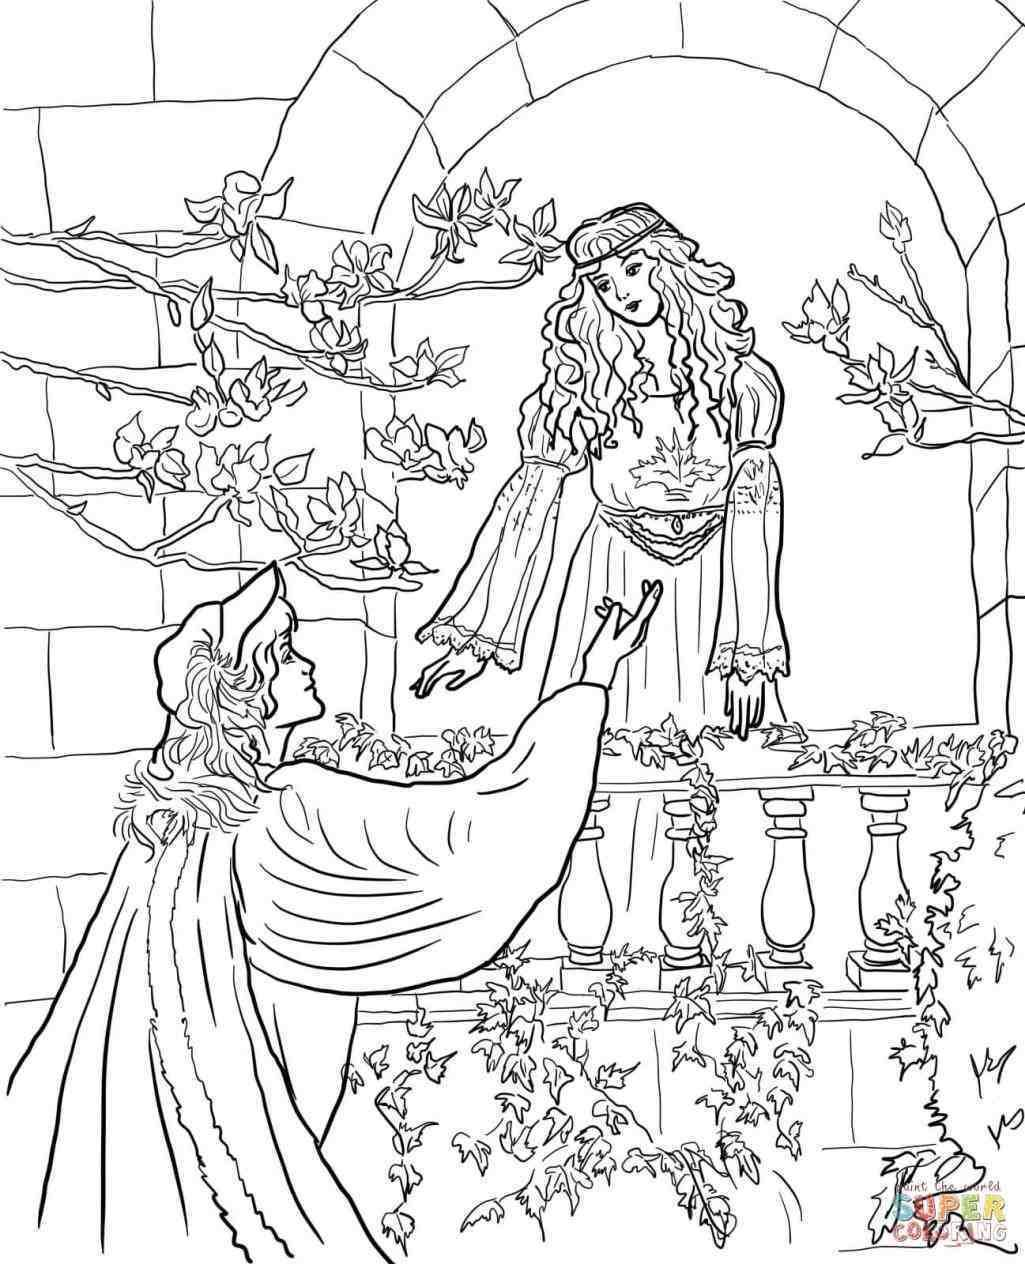 New Post romeo and juliet balcony scene drawing black and white ...